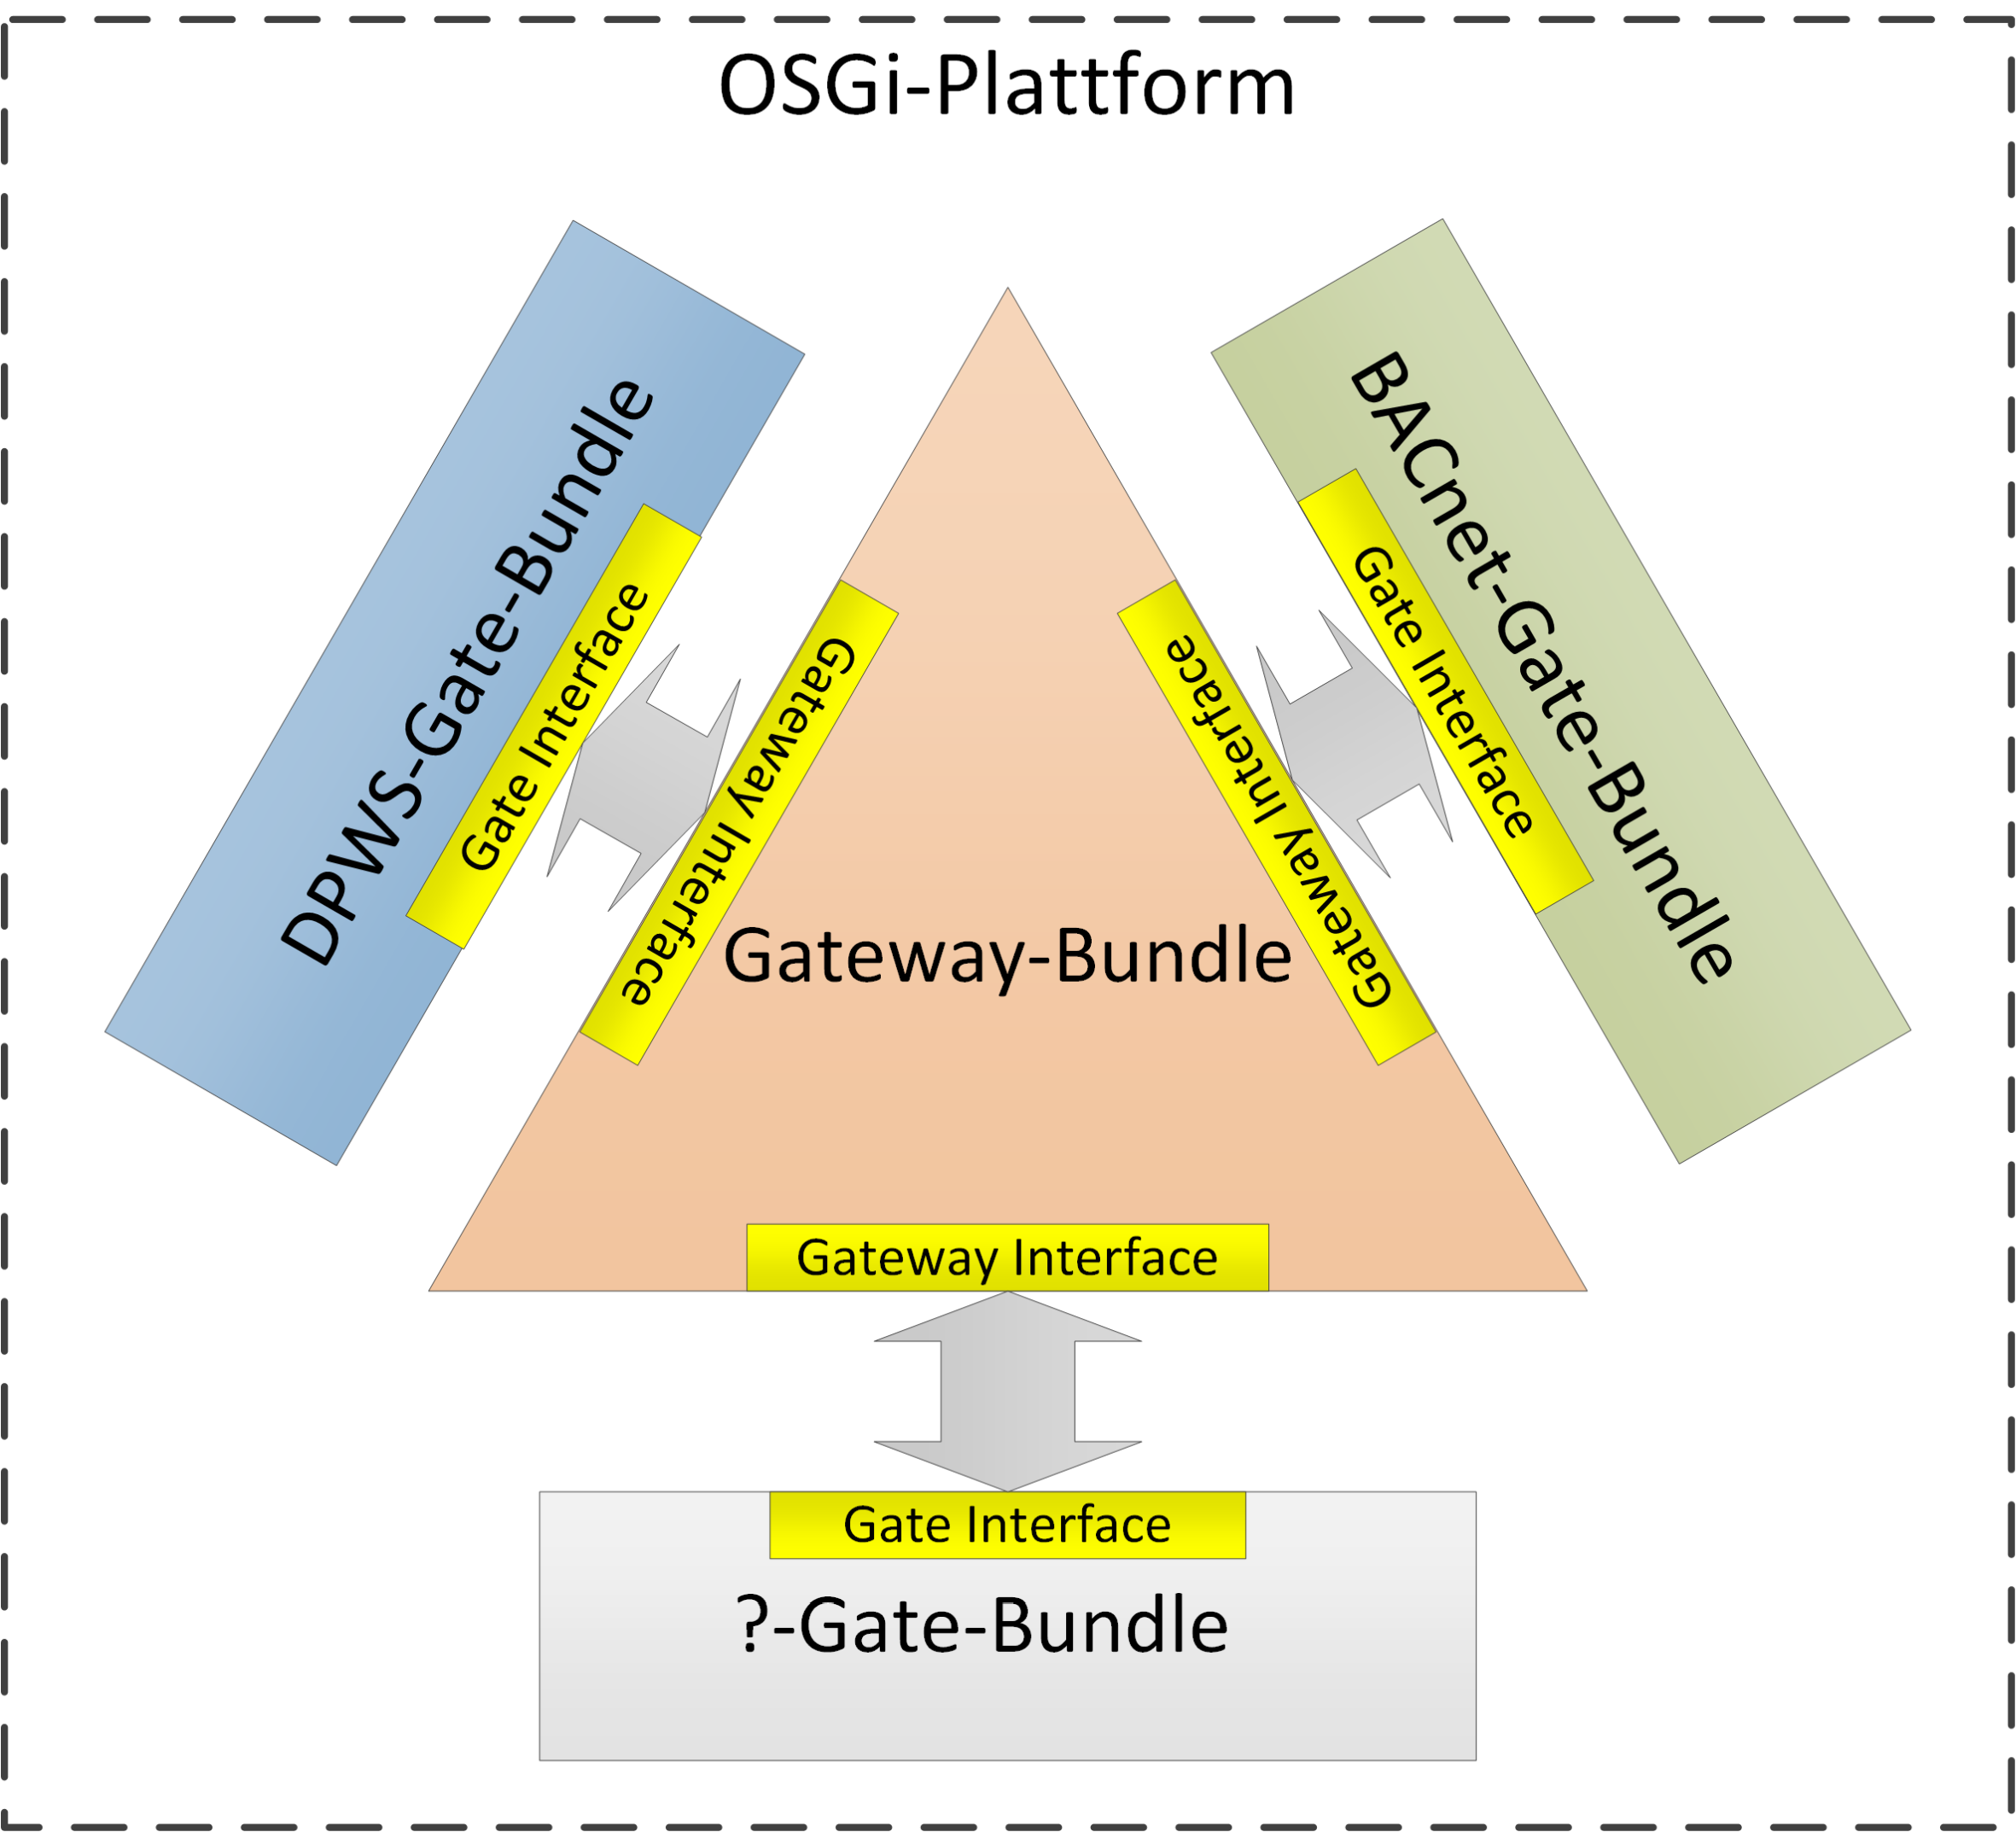 Figure 2: Extension of DPWS-BACnet-Gateway based on OSGi-Framework